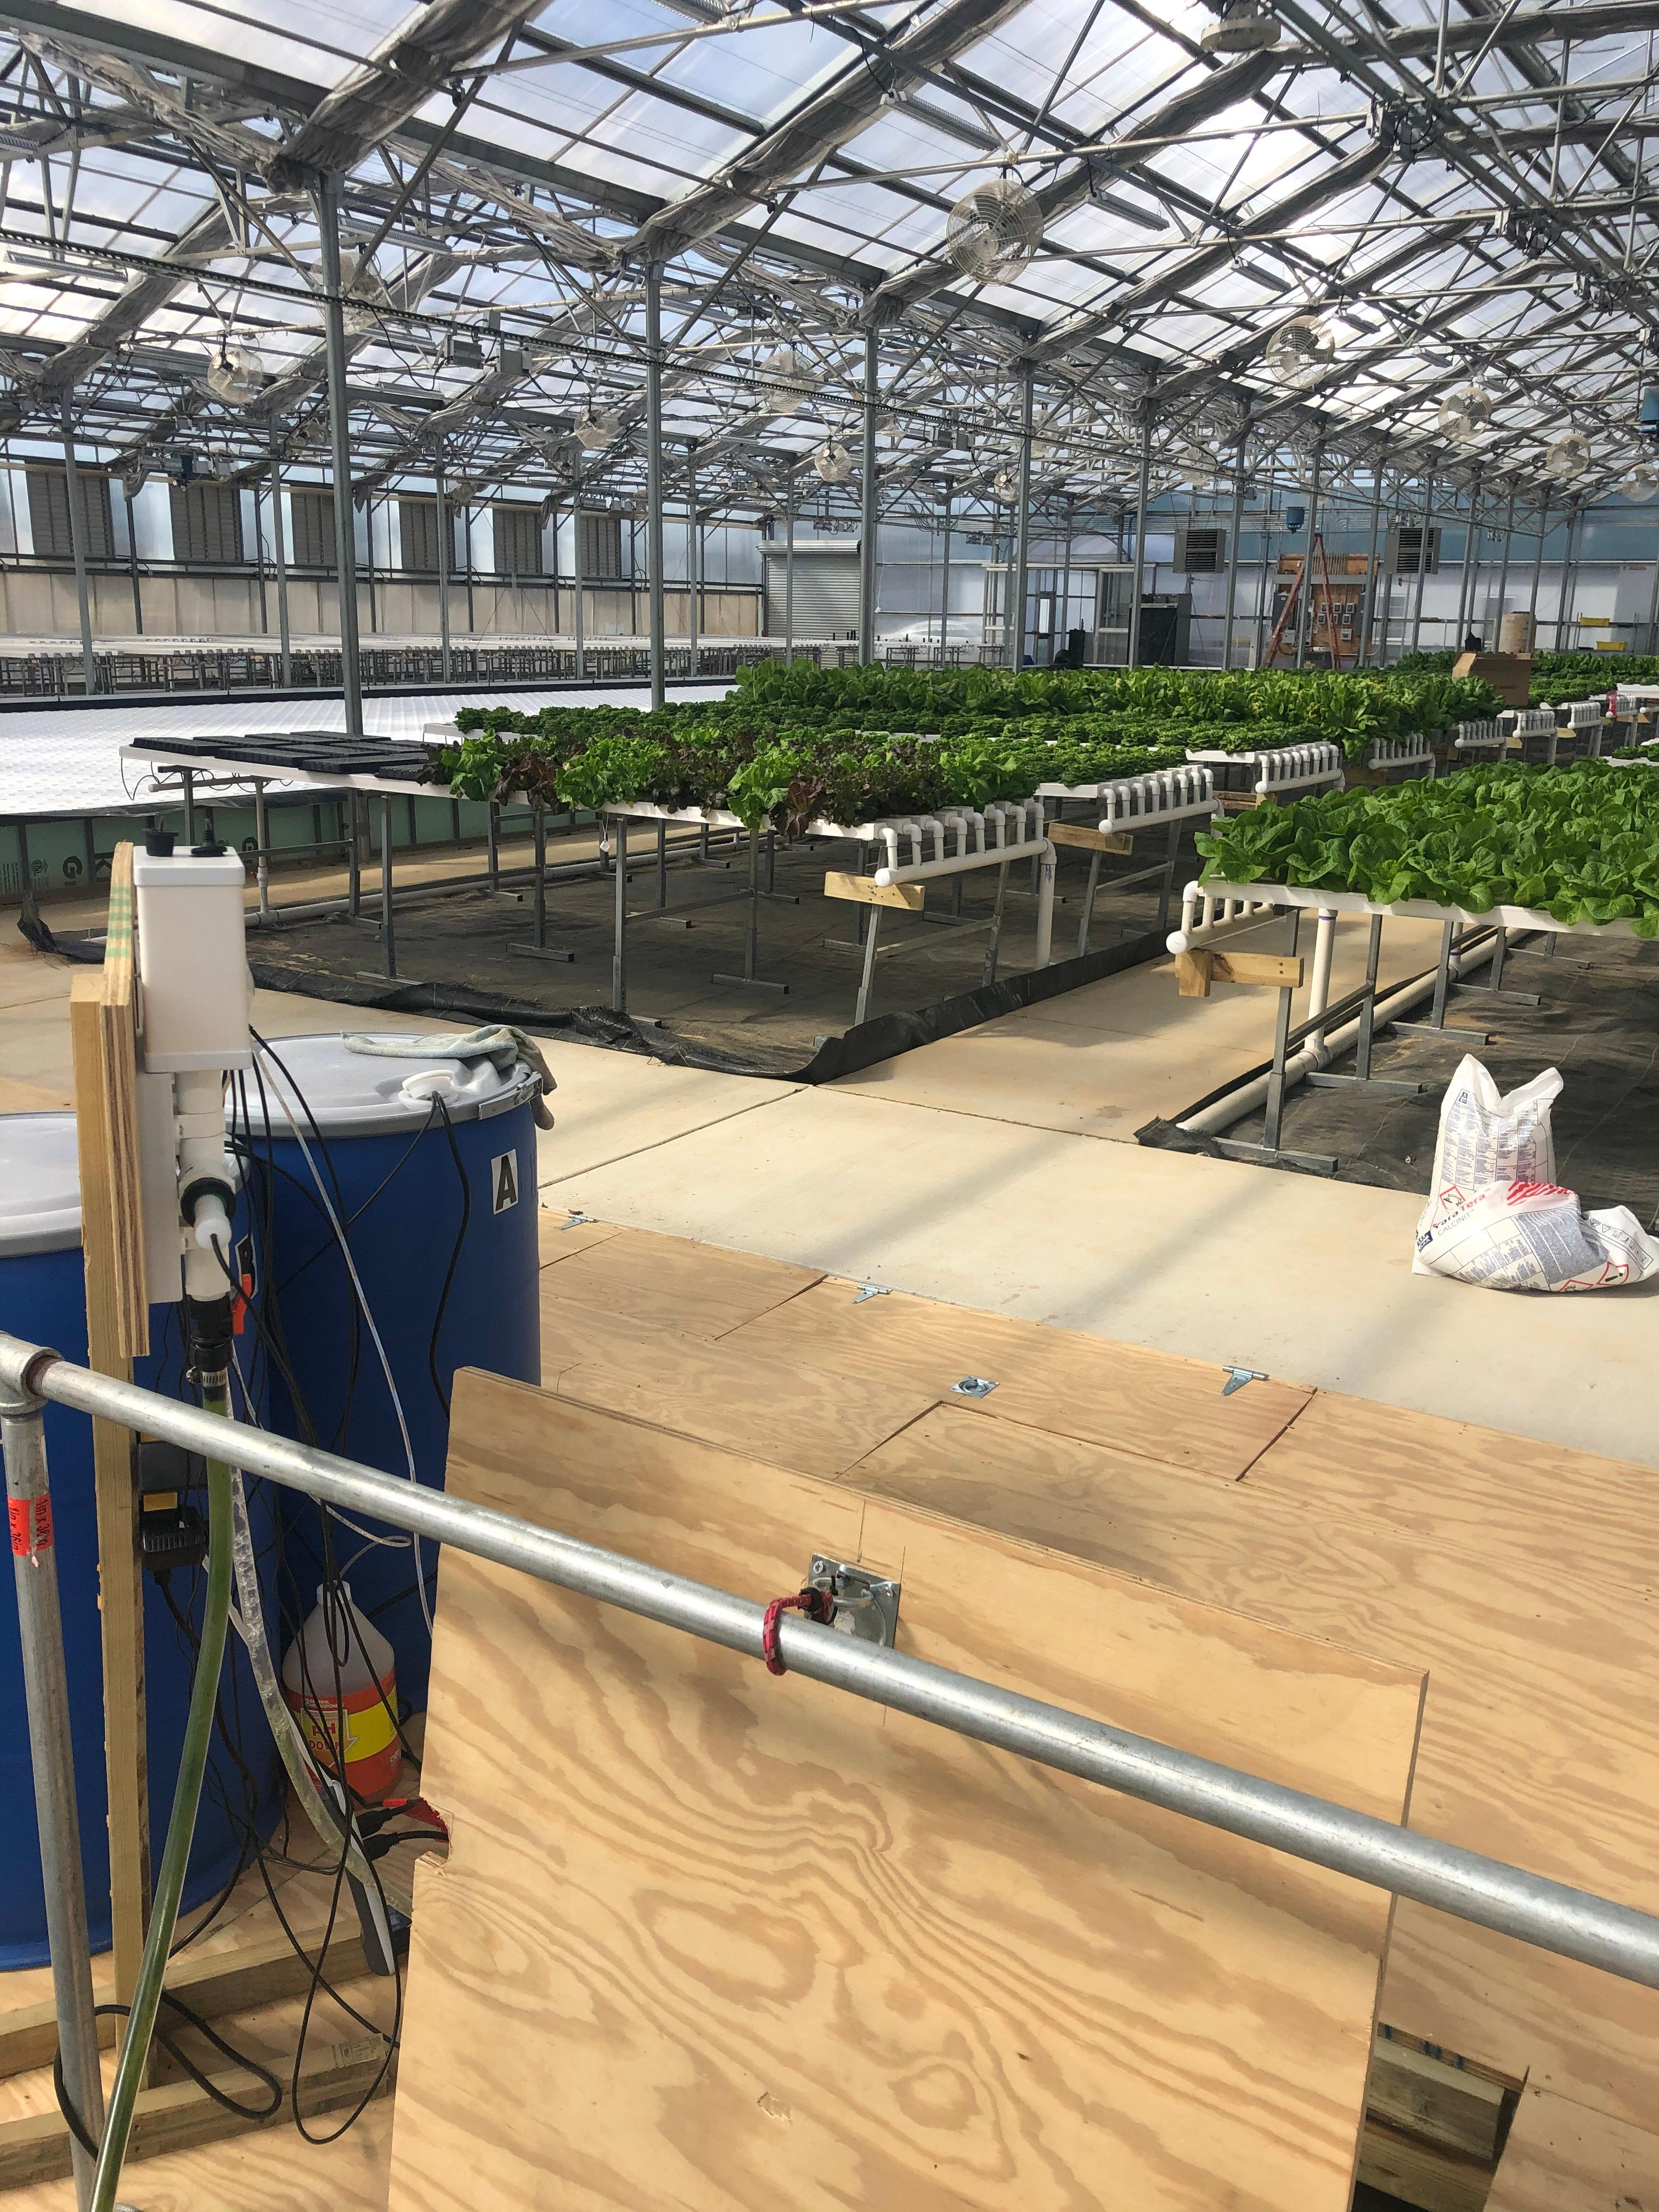 Inside the greenhouse at Mary's Land Farm